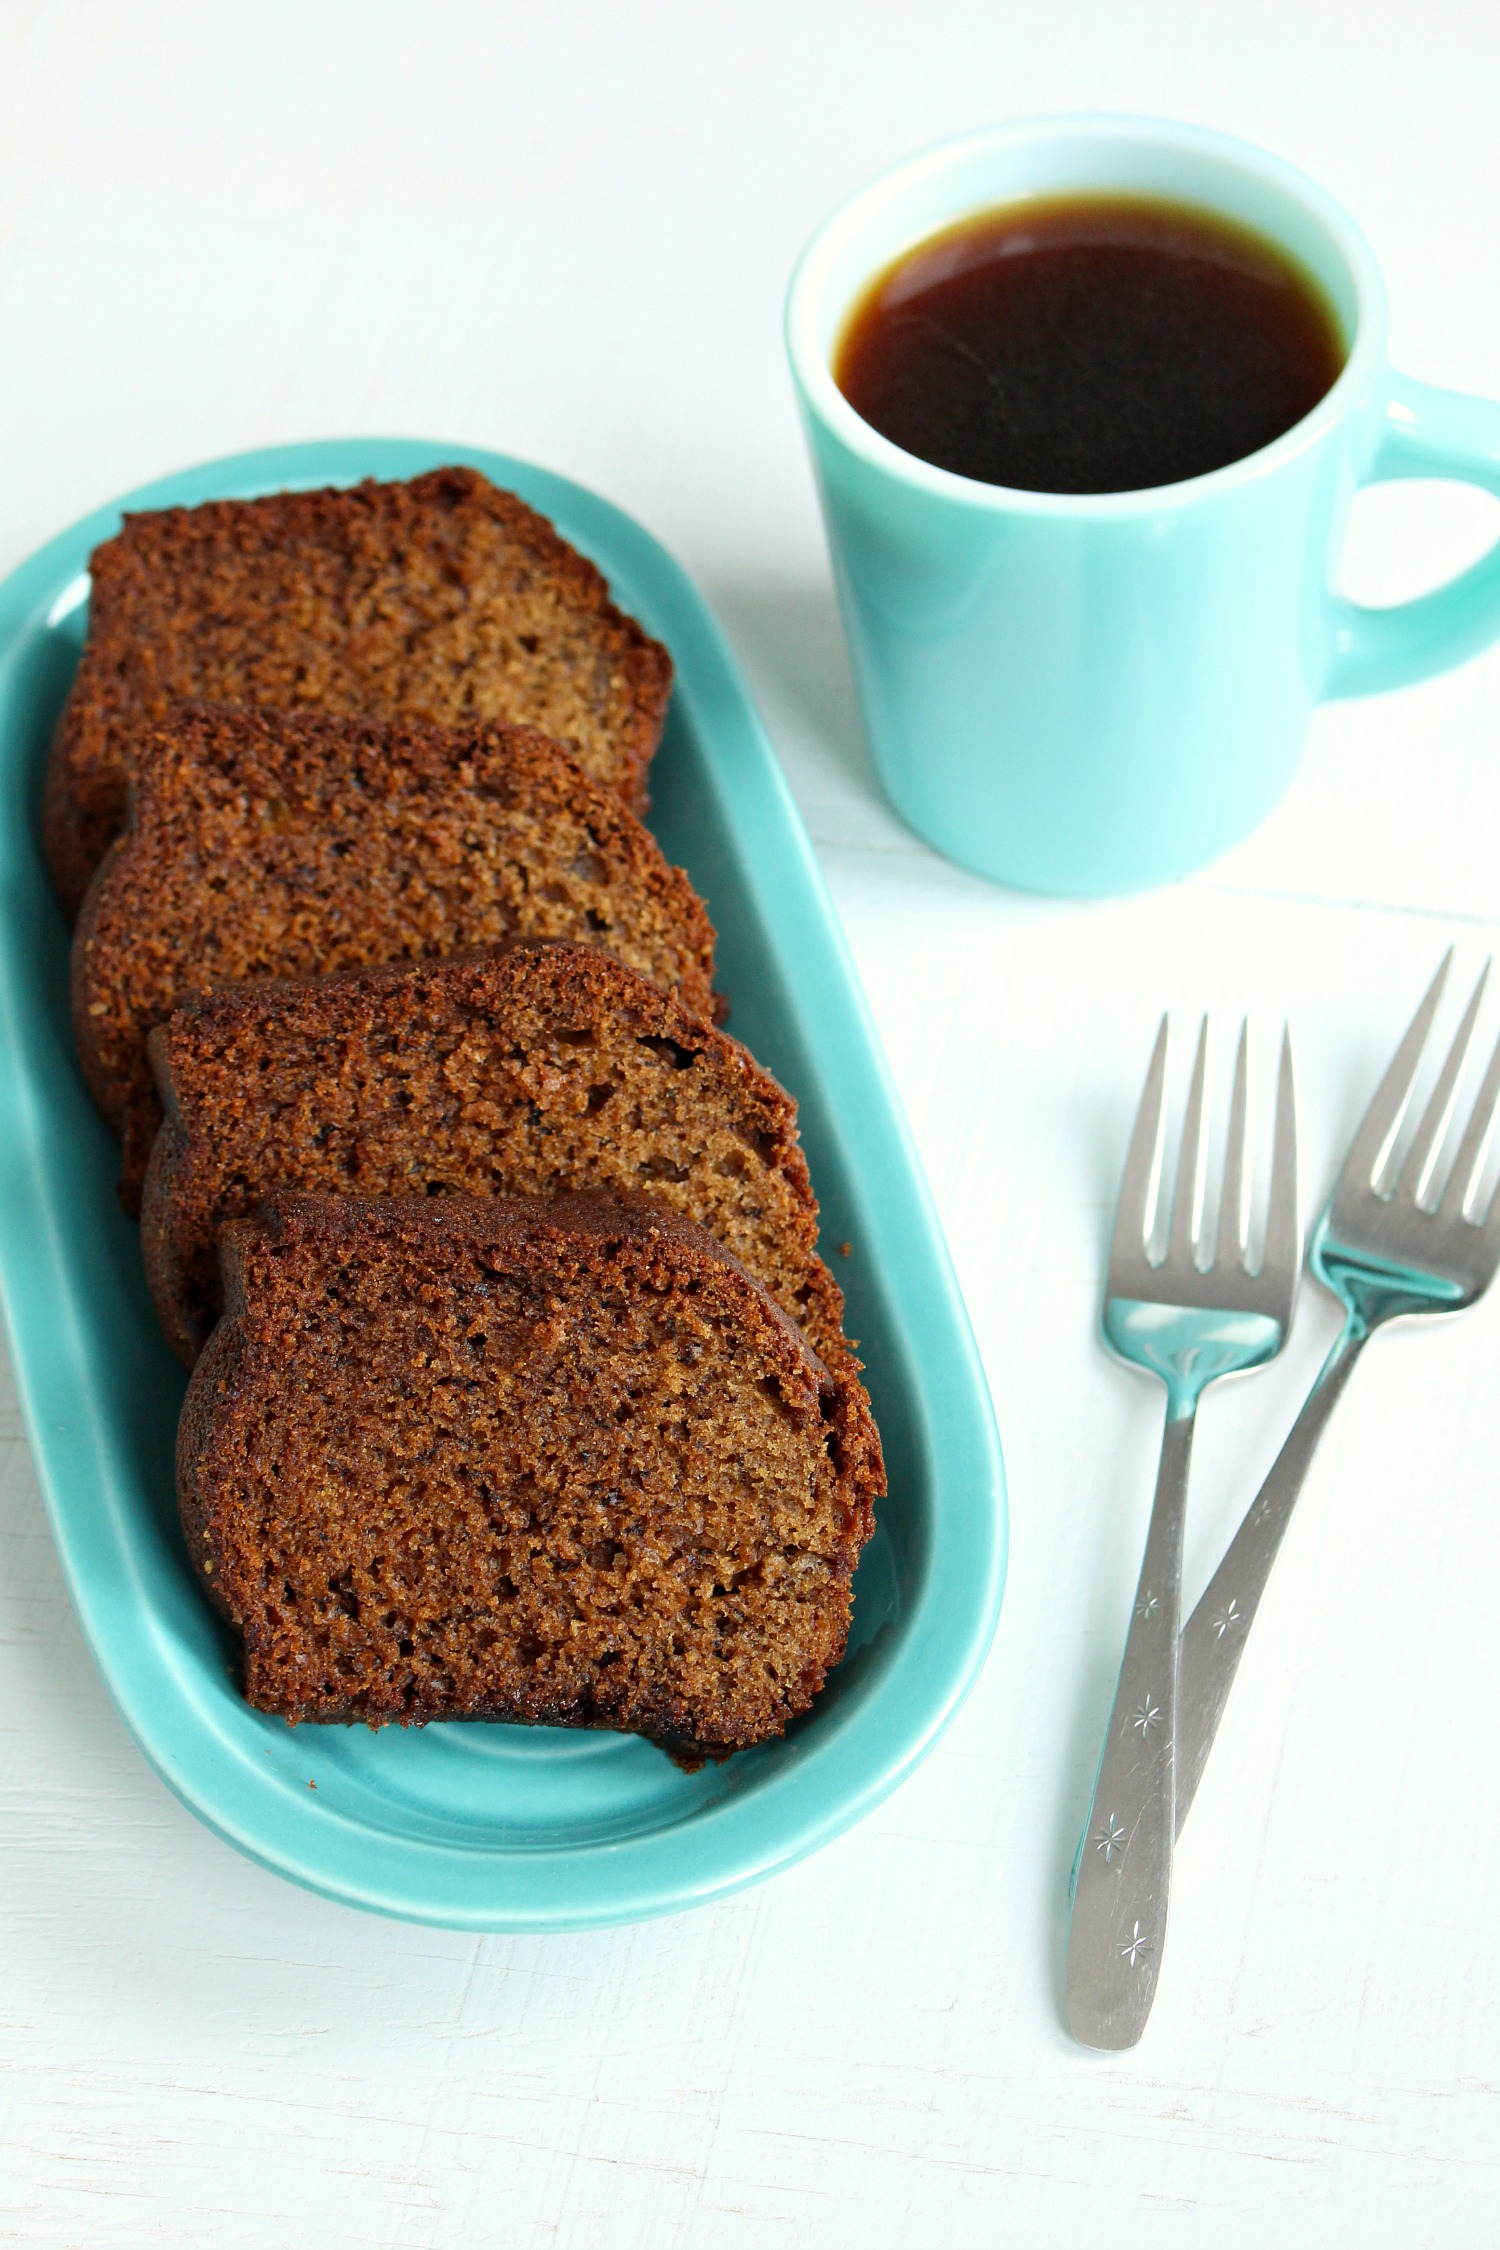 Easy banana bread recipe delicious and foolproof quick delicious banana bread recipe forumfinder Image collections